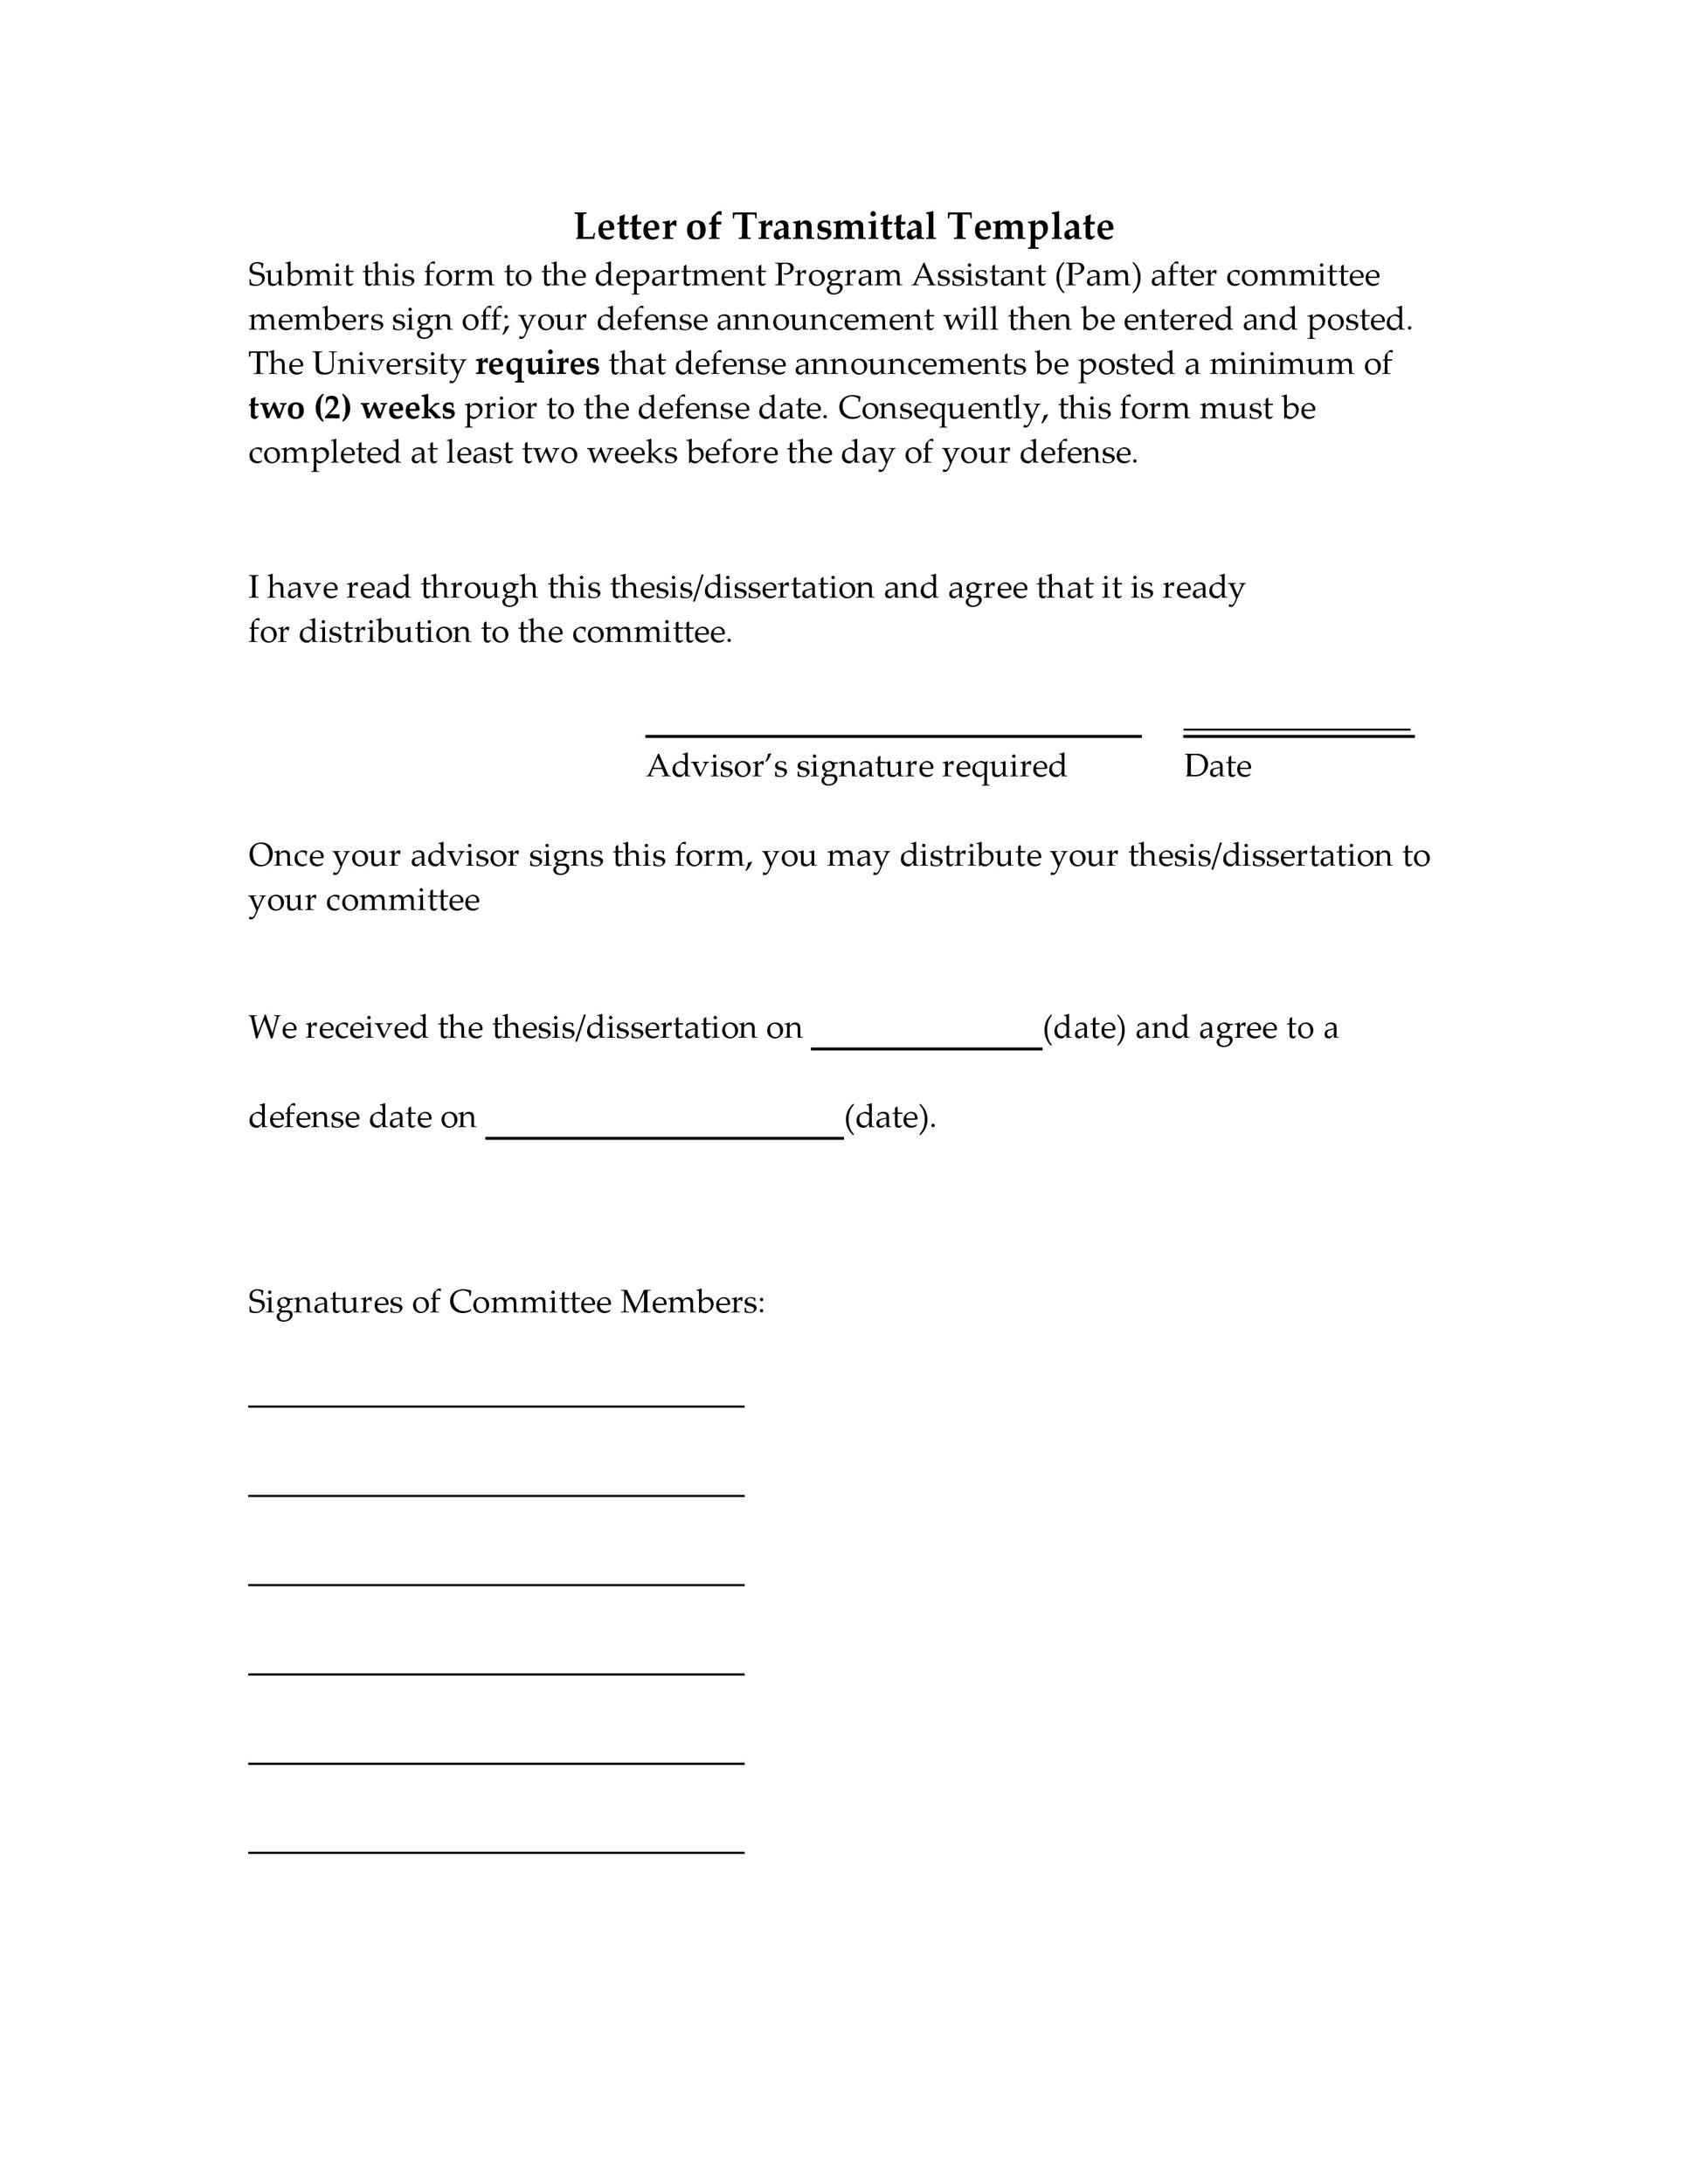 Free letter of transmittal template 28